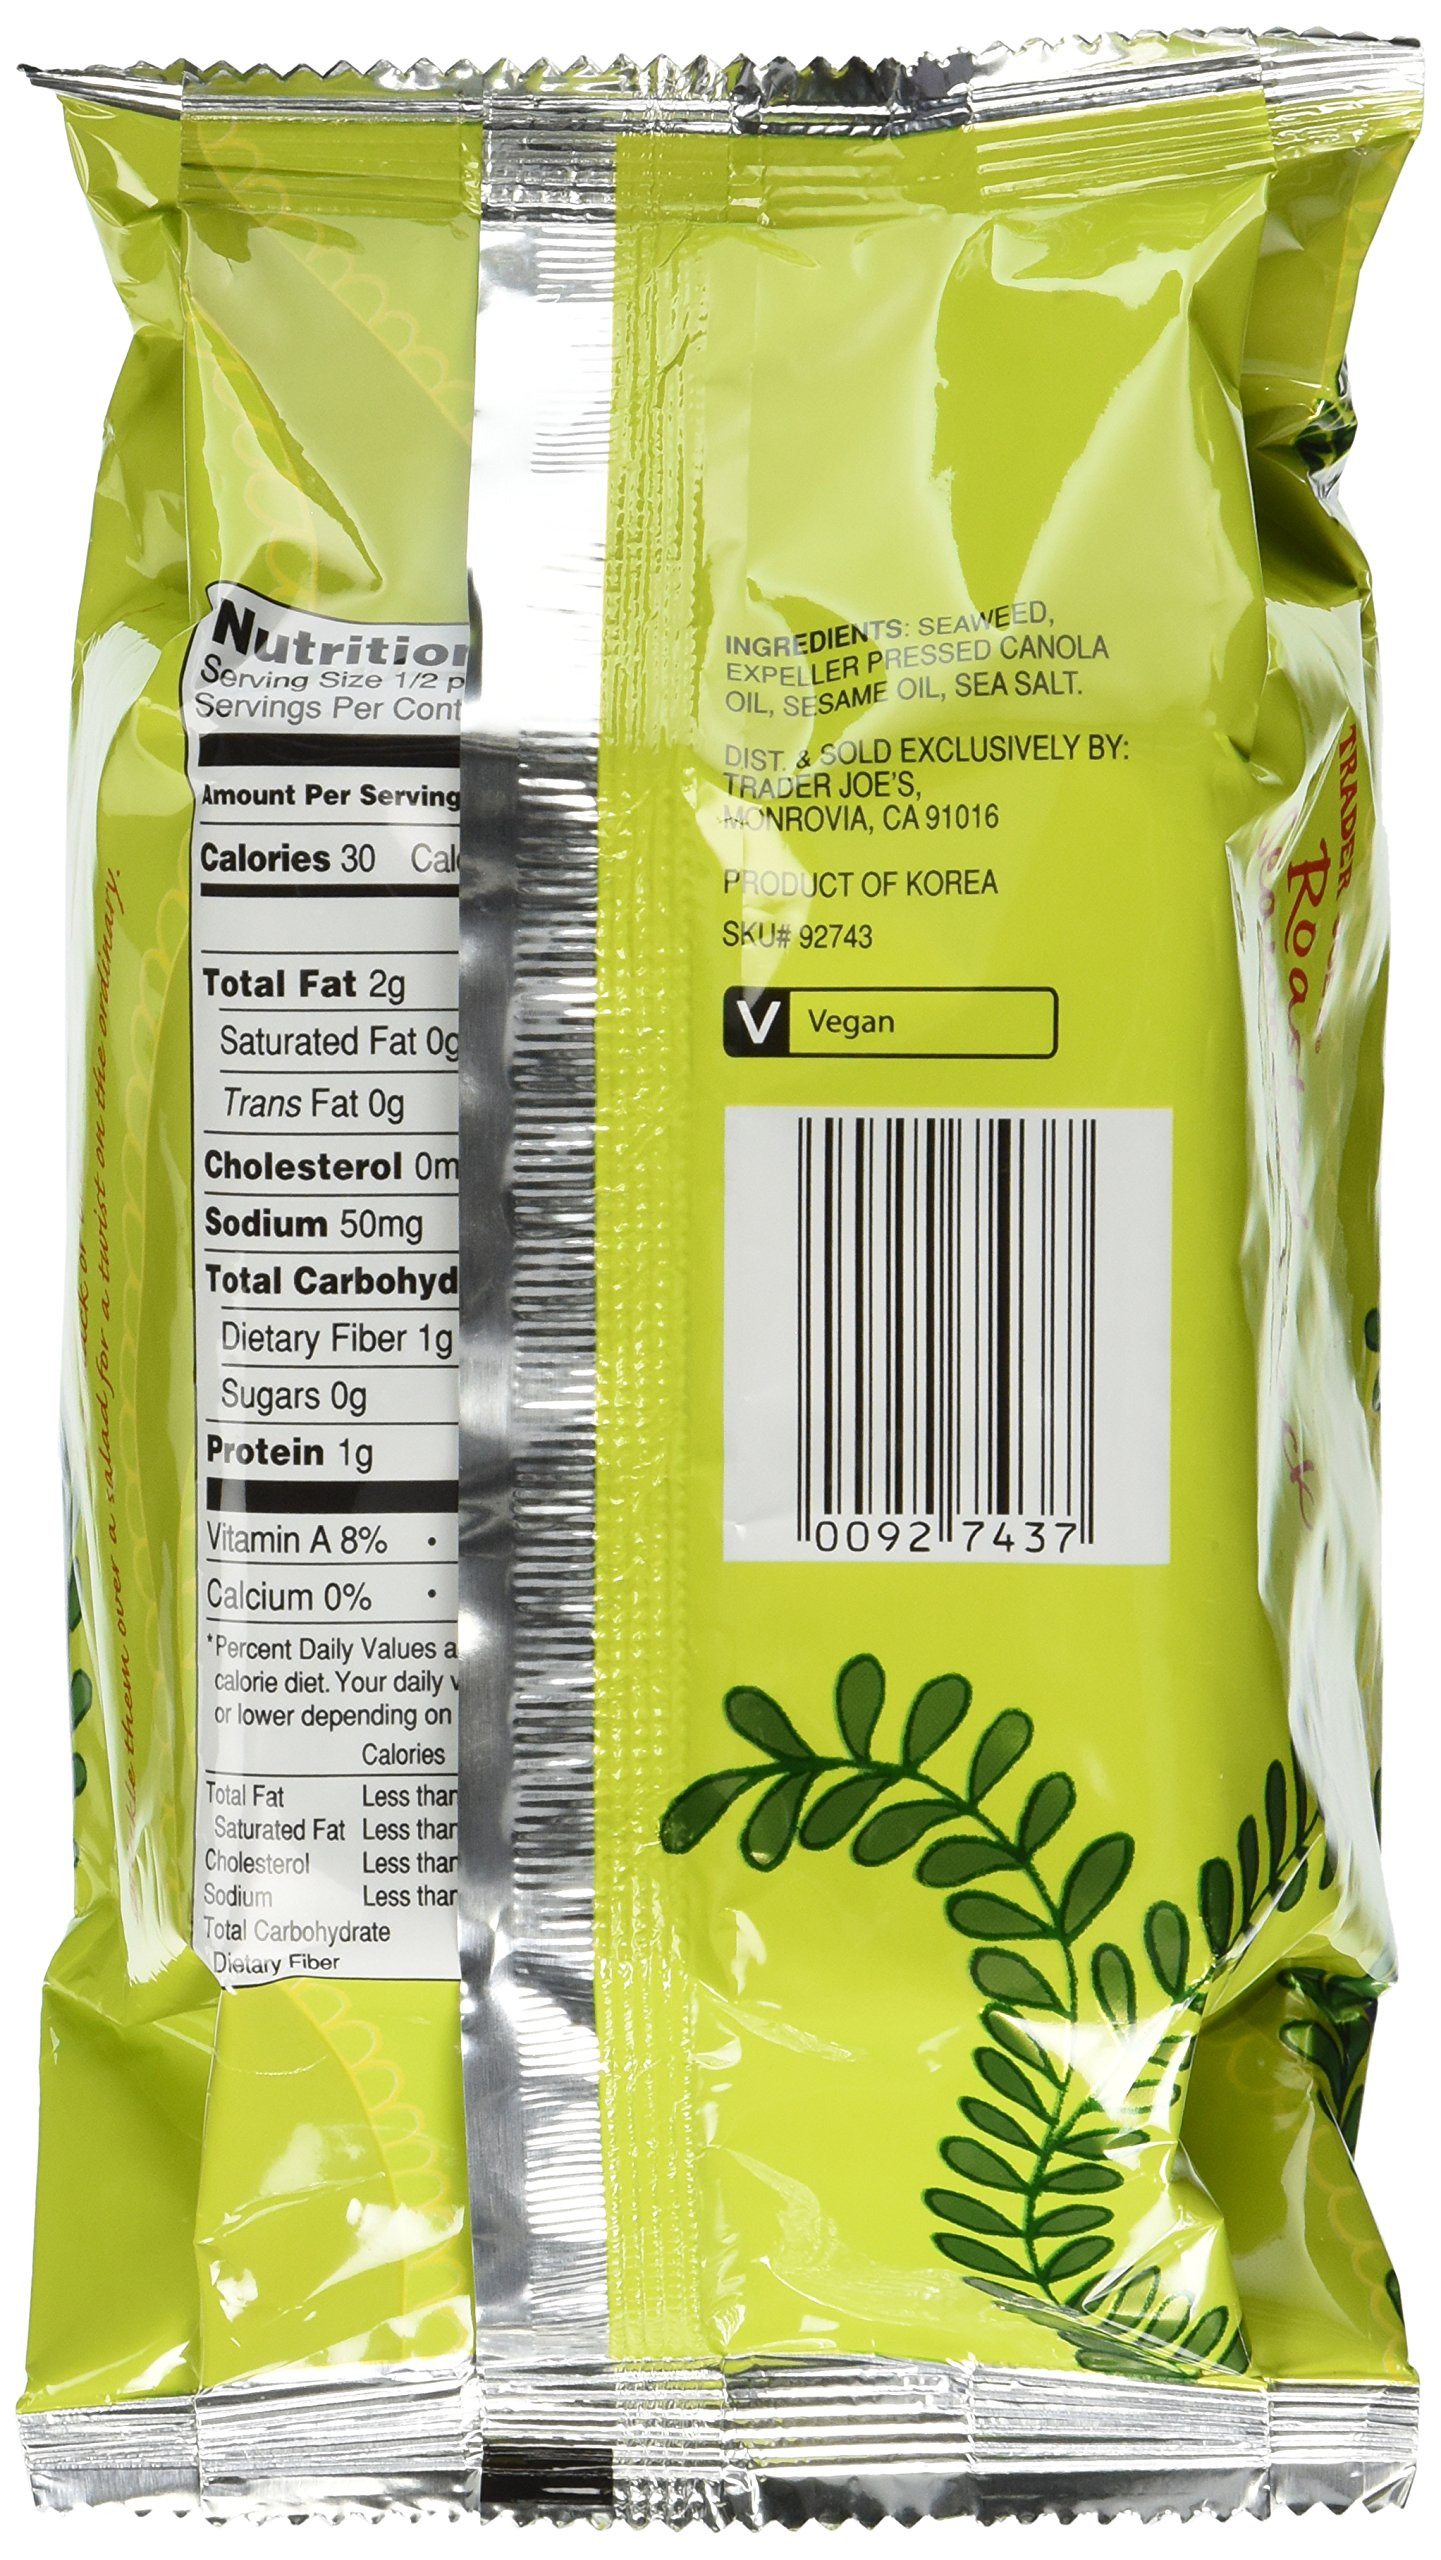 Trader Joe's Roasted Seaweed Snack, Net Wt. 0.4 oz(11.3g)per pack  (Pack of 6) by Trader Joe's